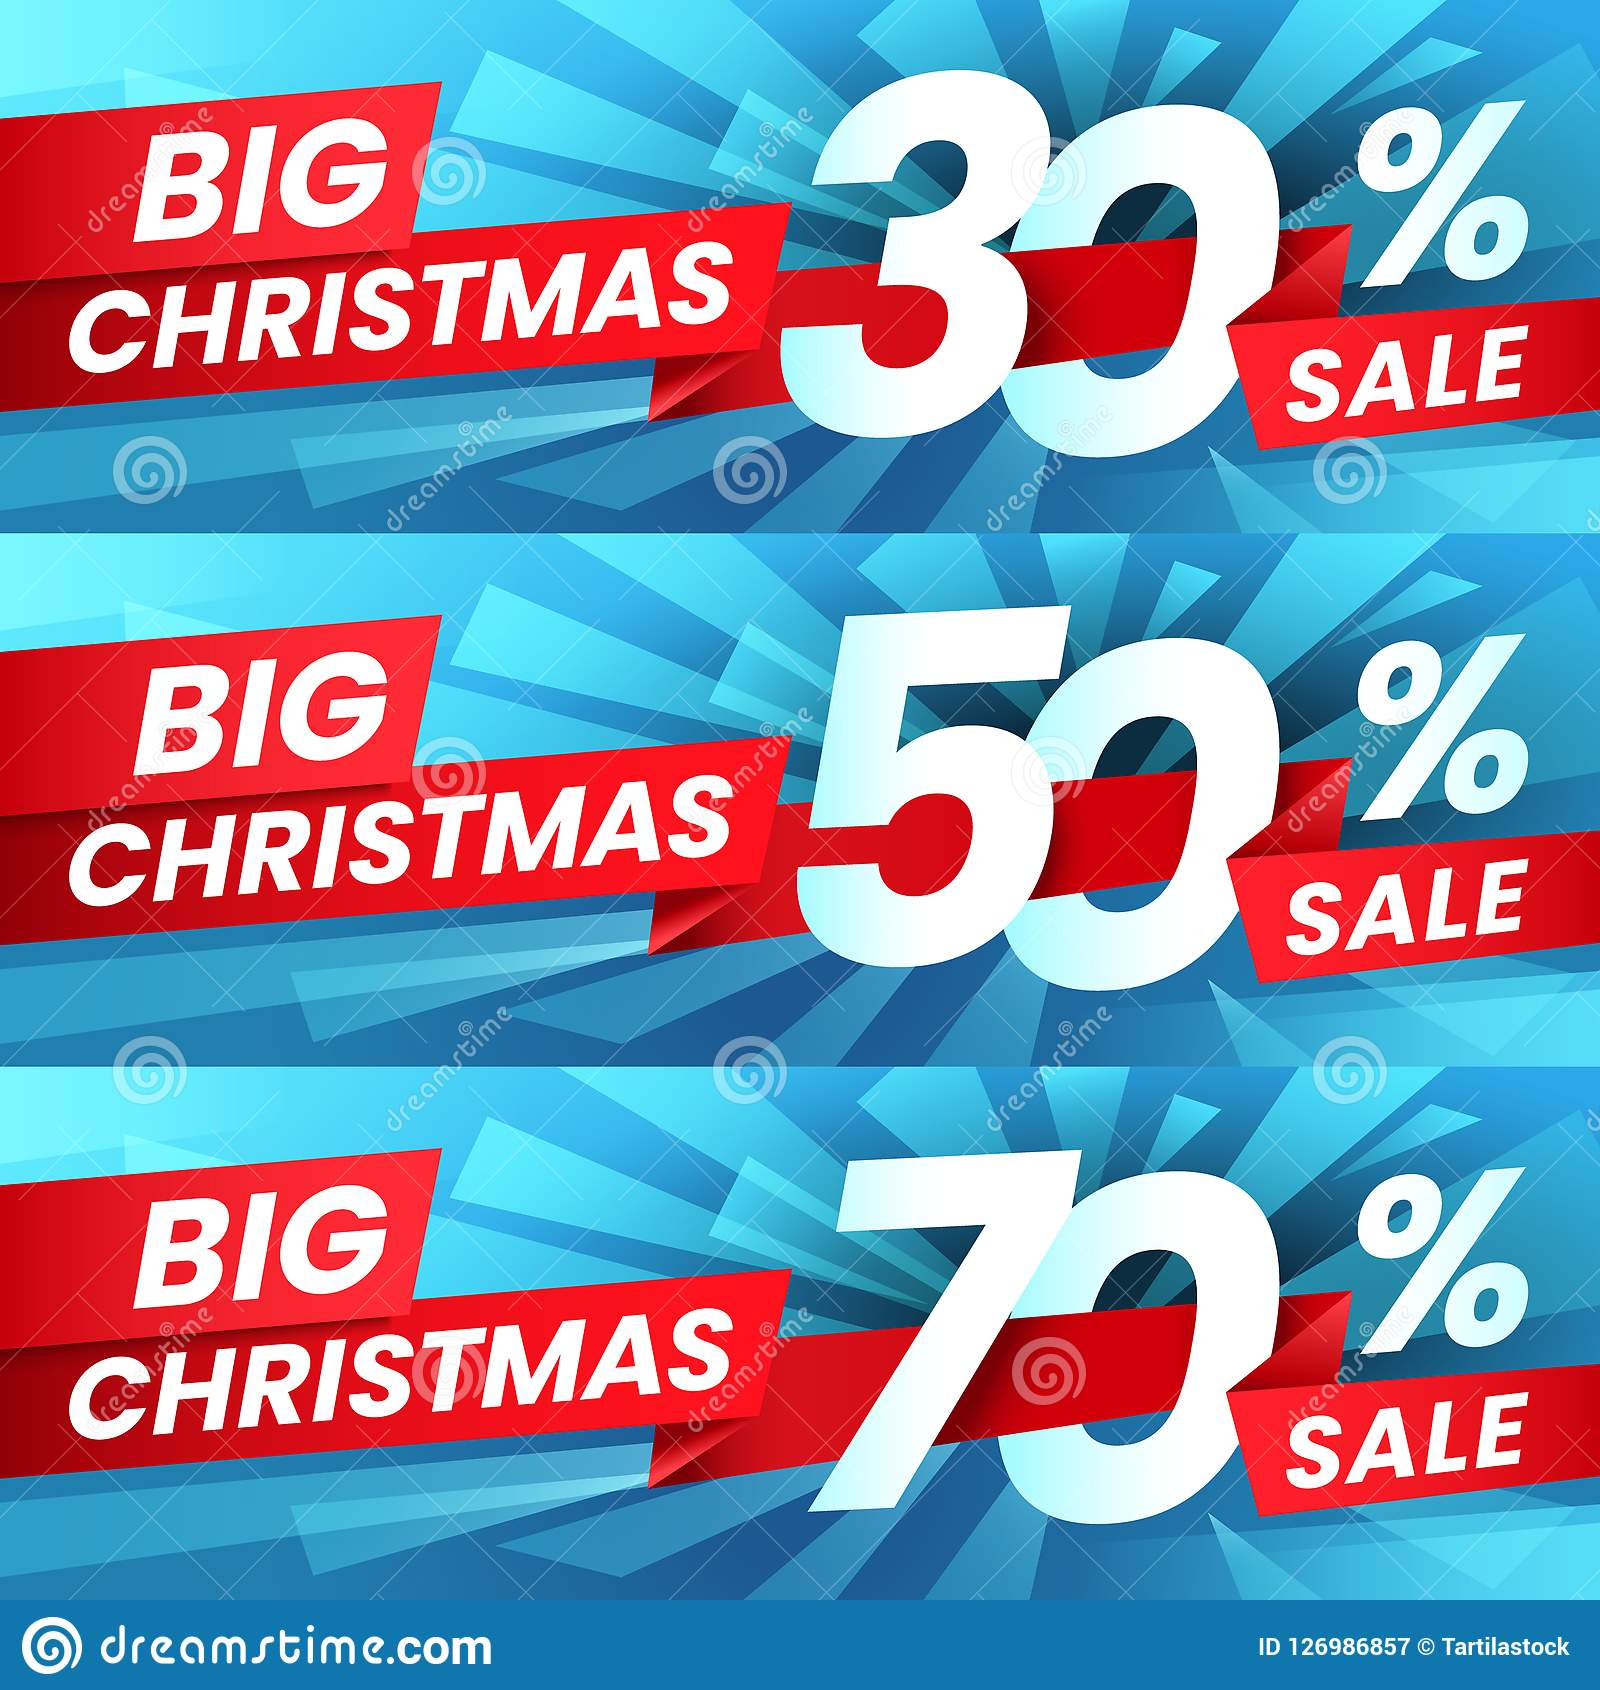 best deals for christmas shopping 2019